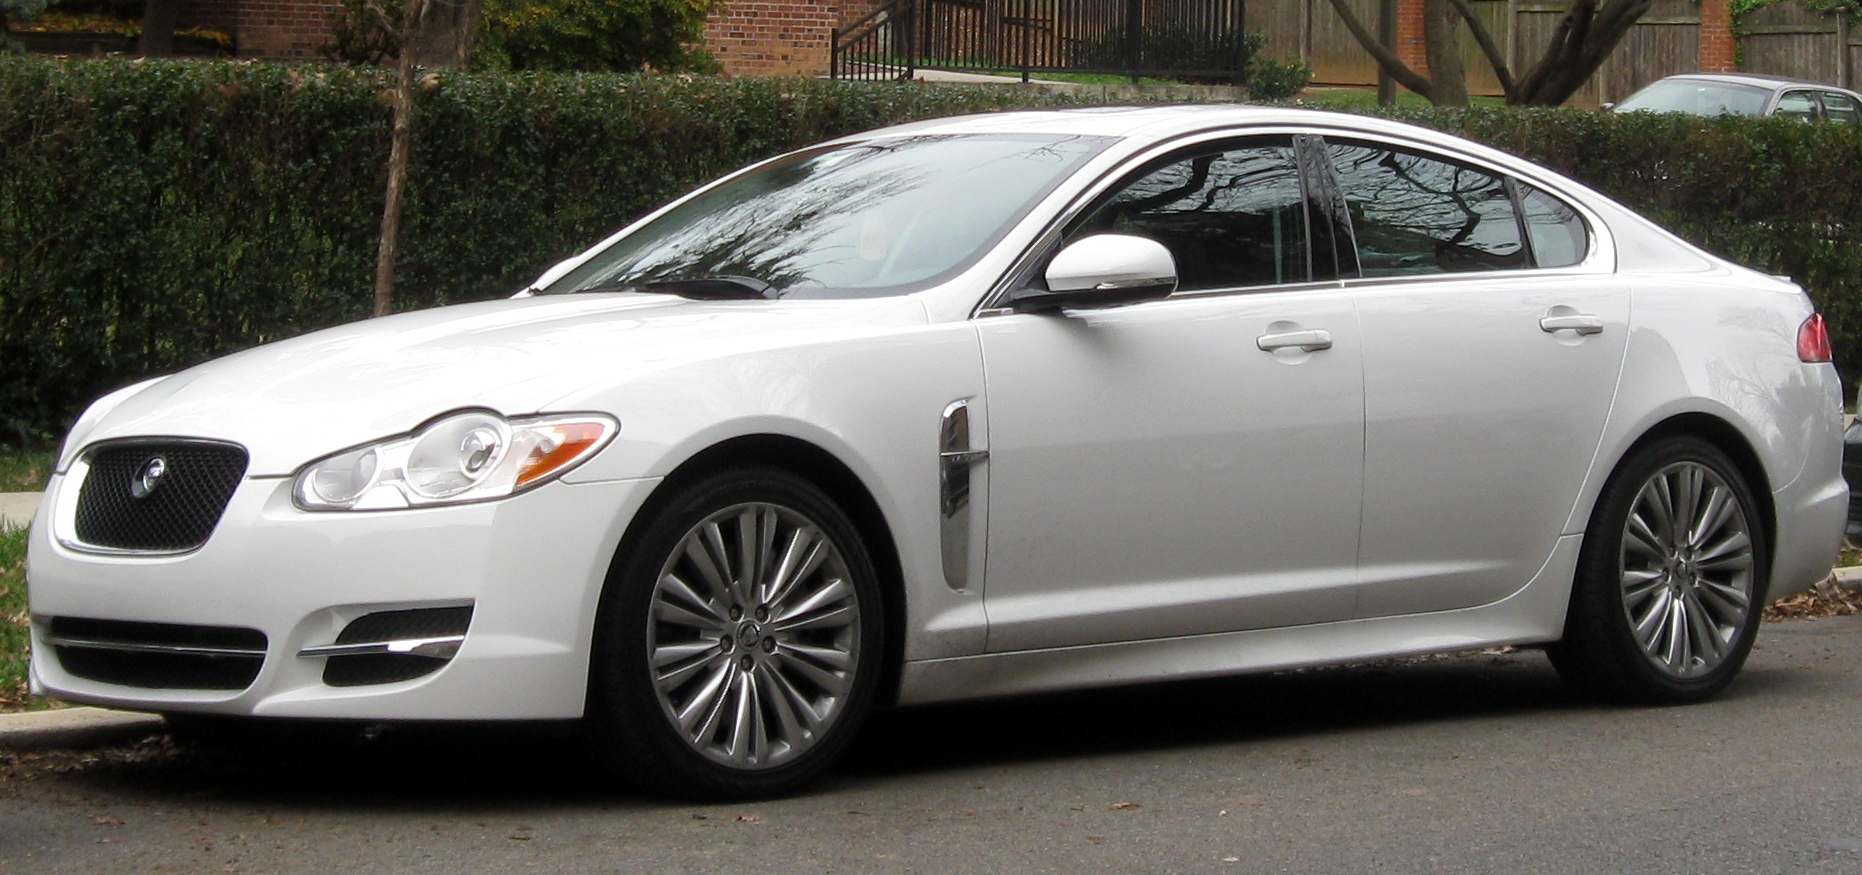 Jaguar XF photo 10